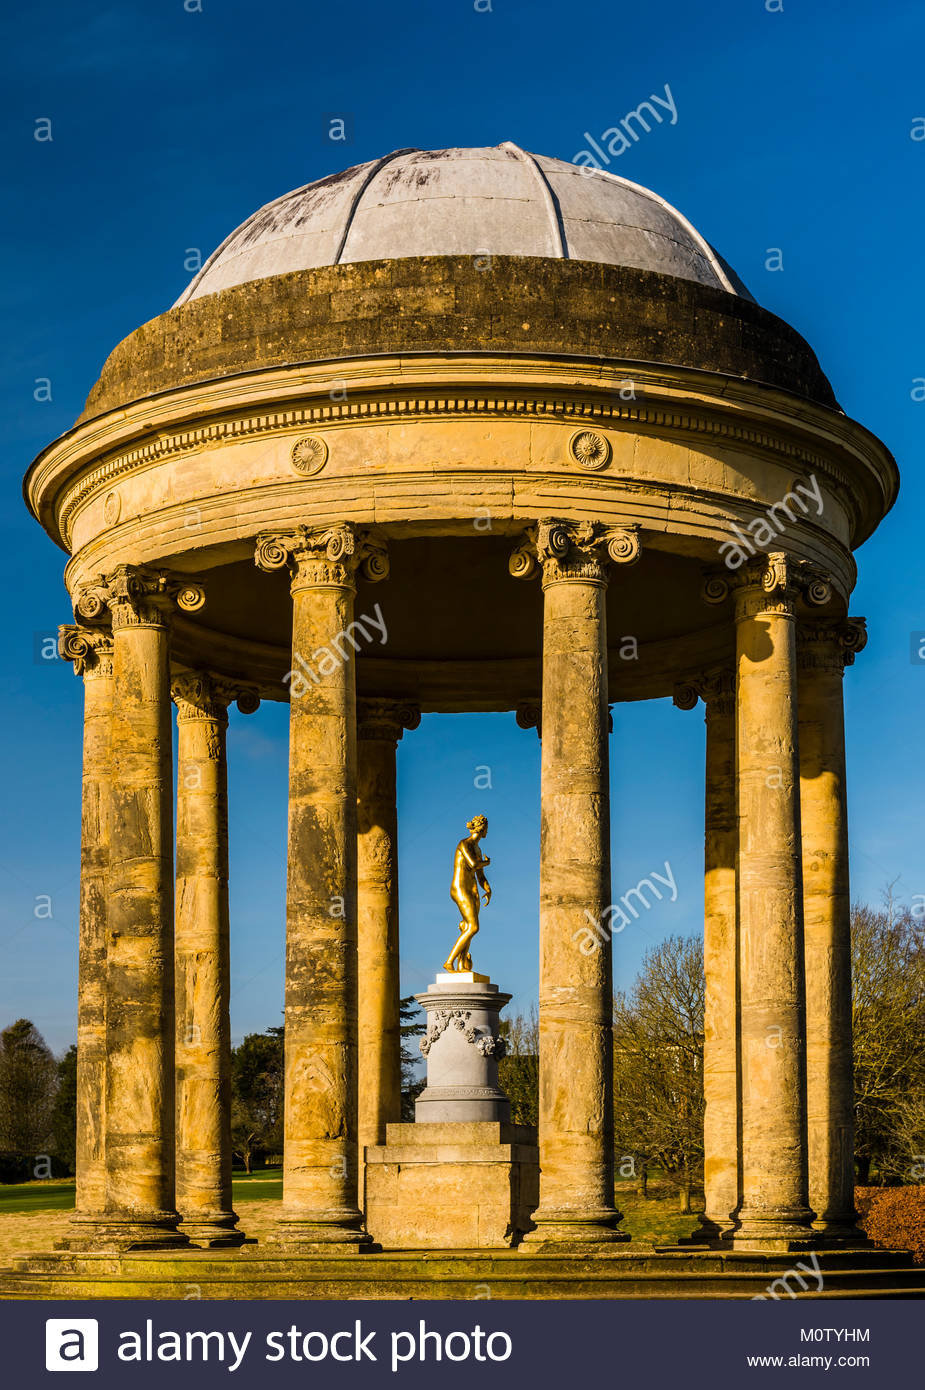 Rotunda at Stowe Landscape Gardens, Buckinghamshire, UK - Stock Image